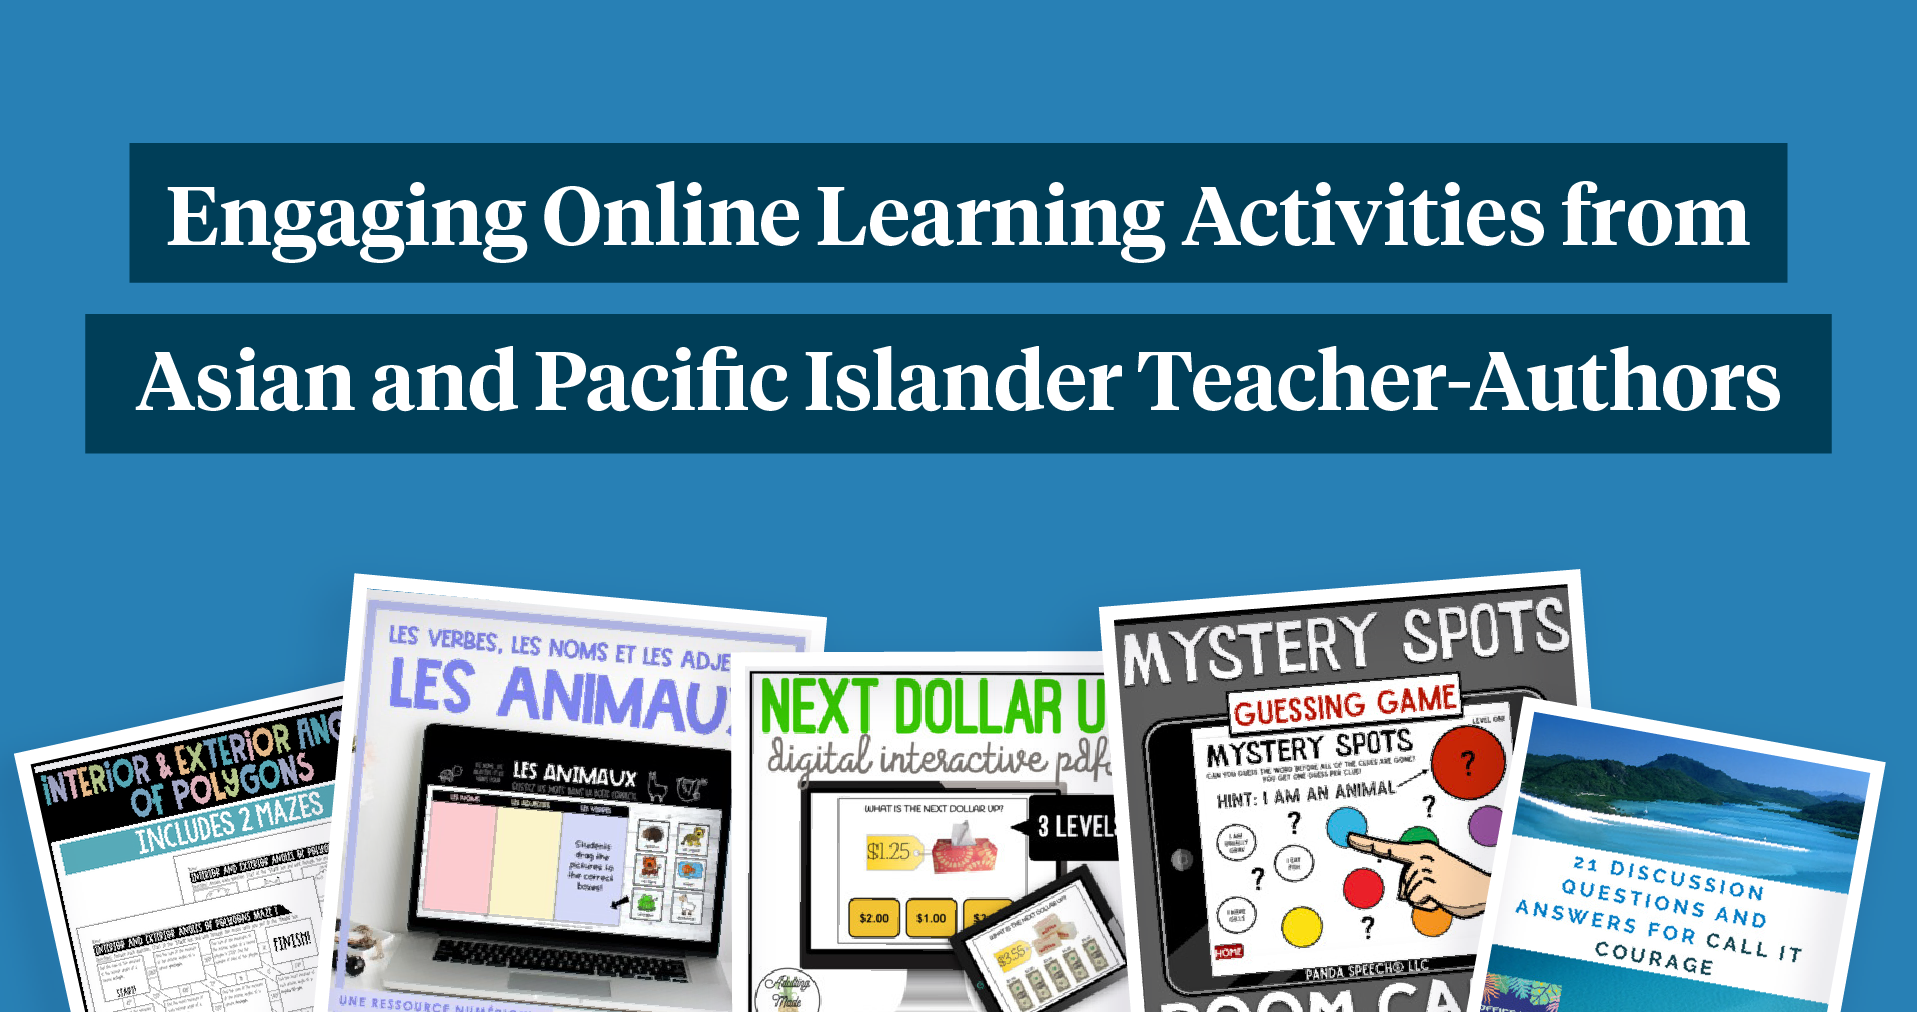 Engaging Online Learning Activities from Asian and Pacific Islander Teacher-Authors